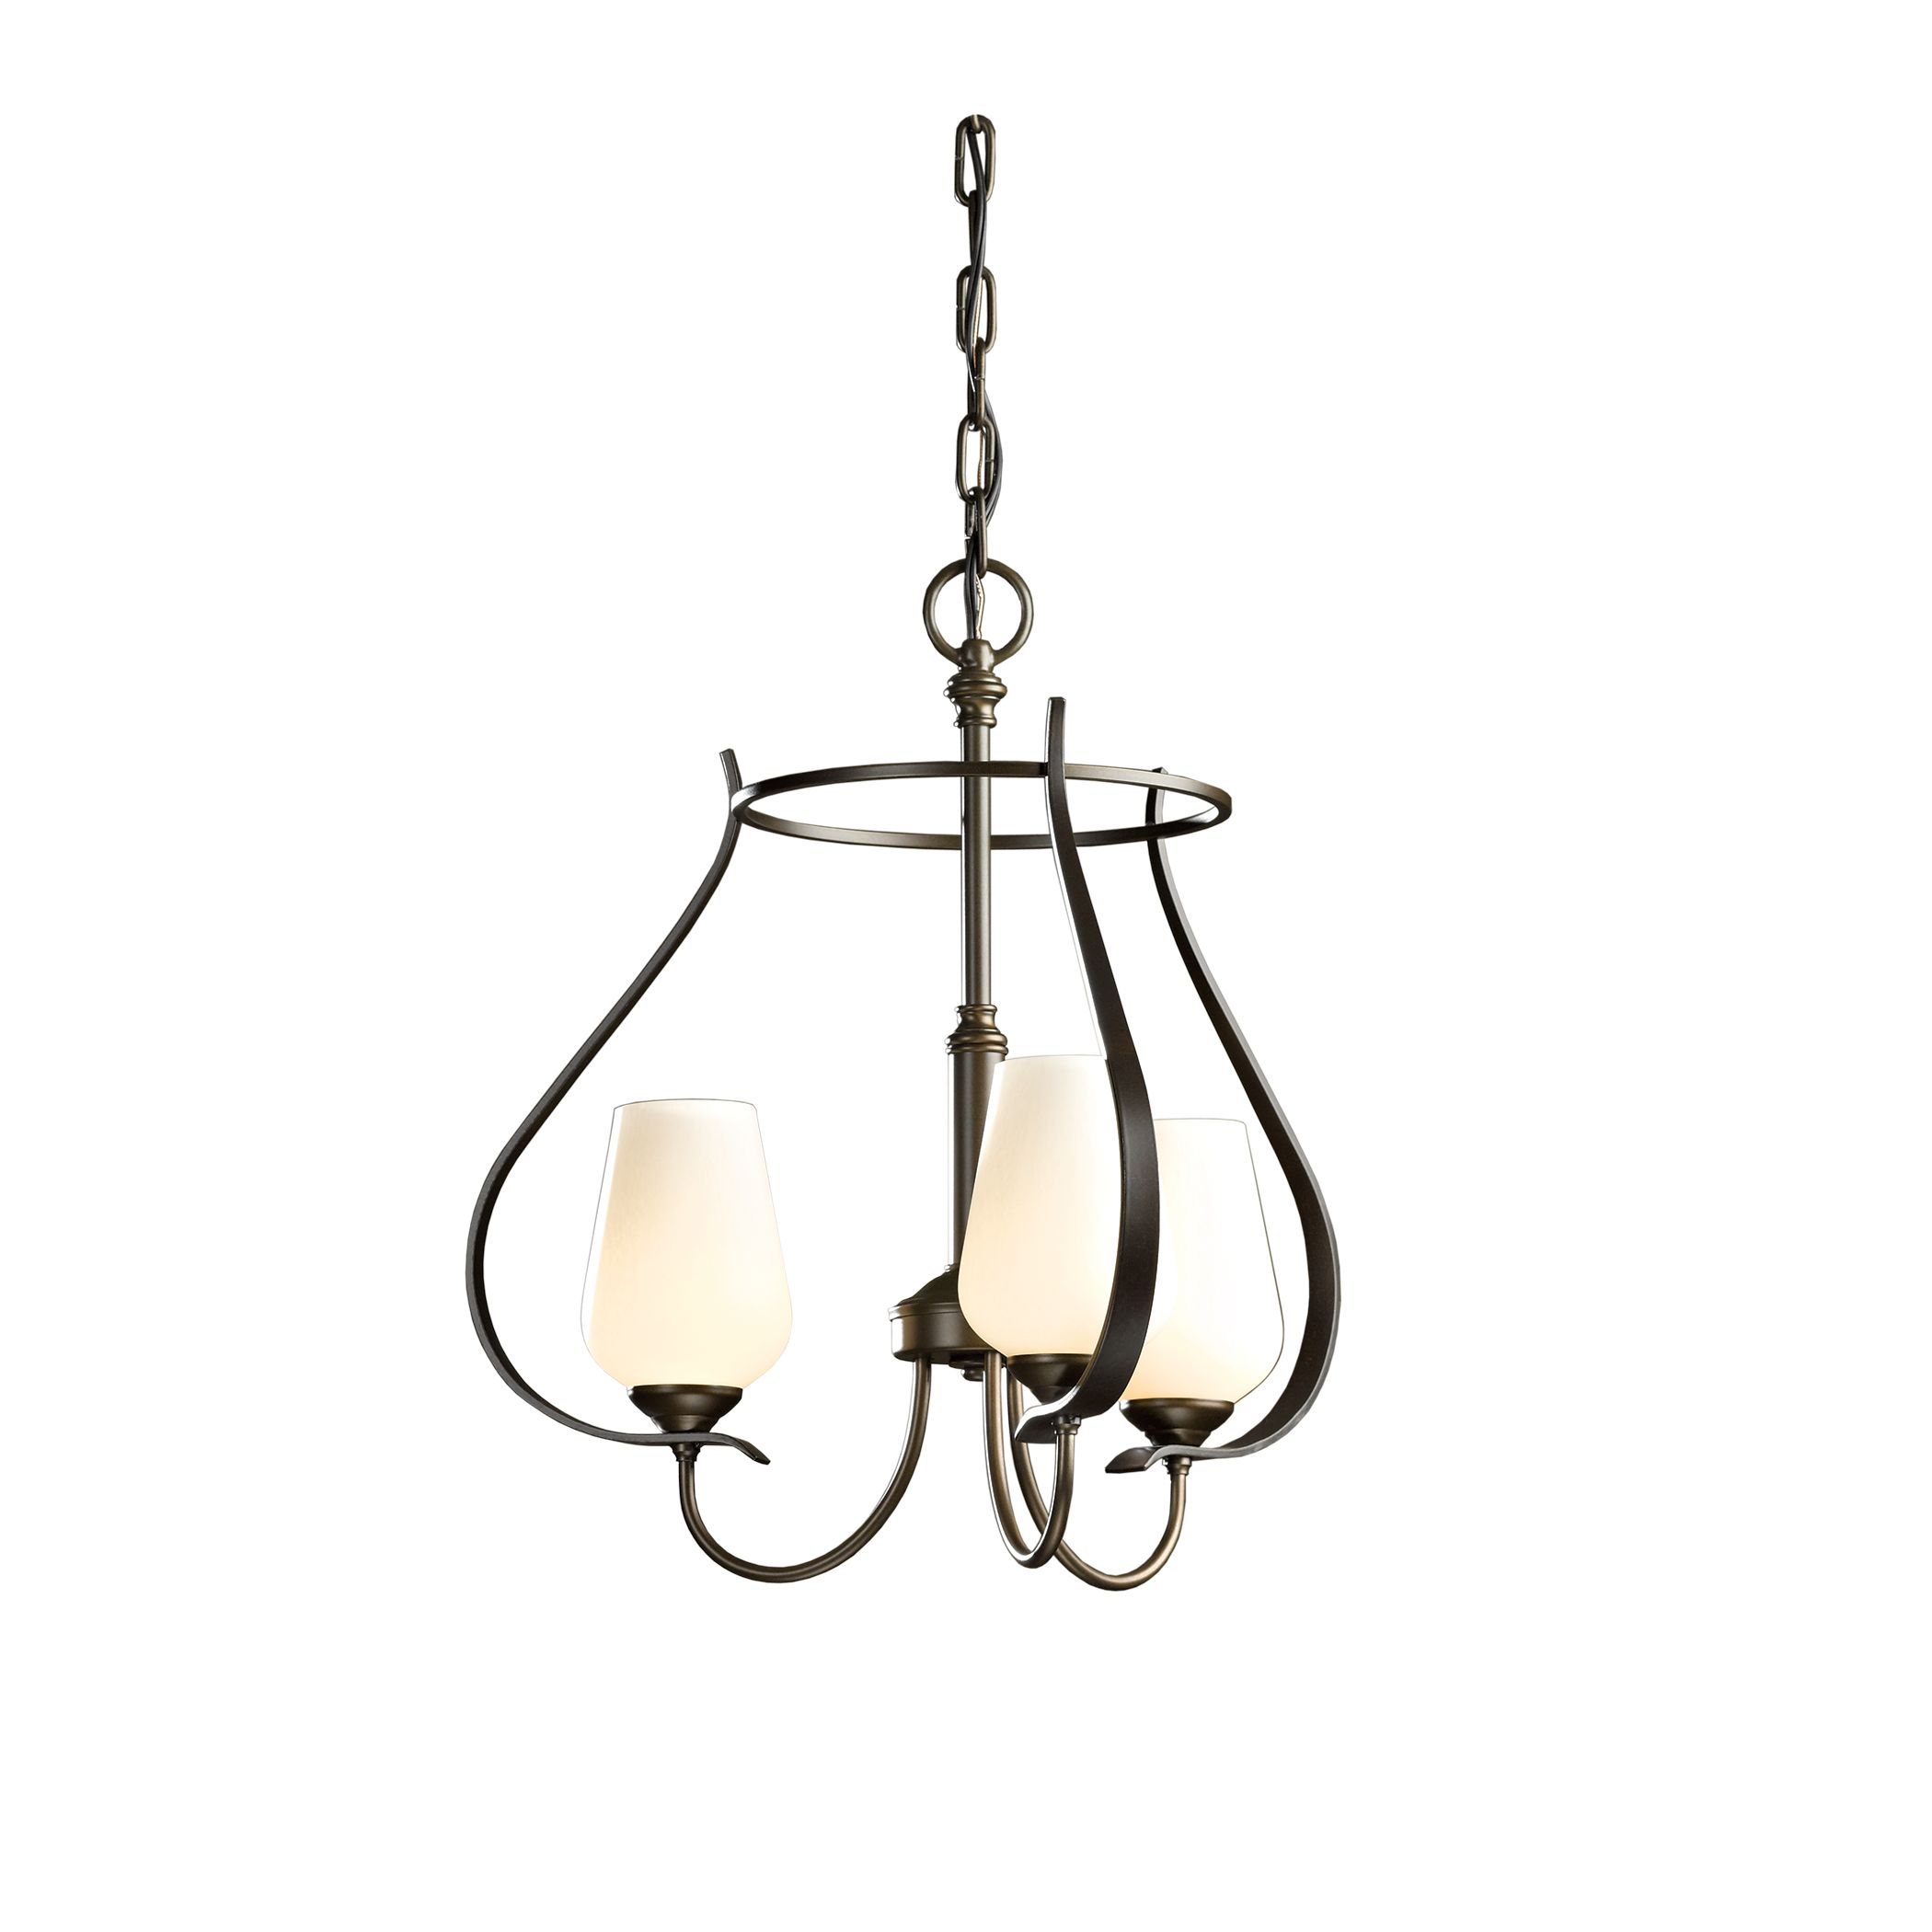 Flora 3 arm chandelier hubbardton forge aloadofball Image collections